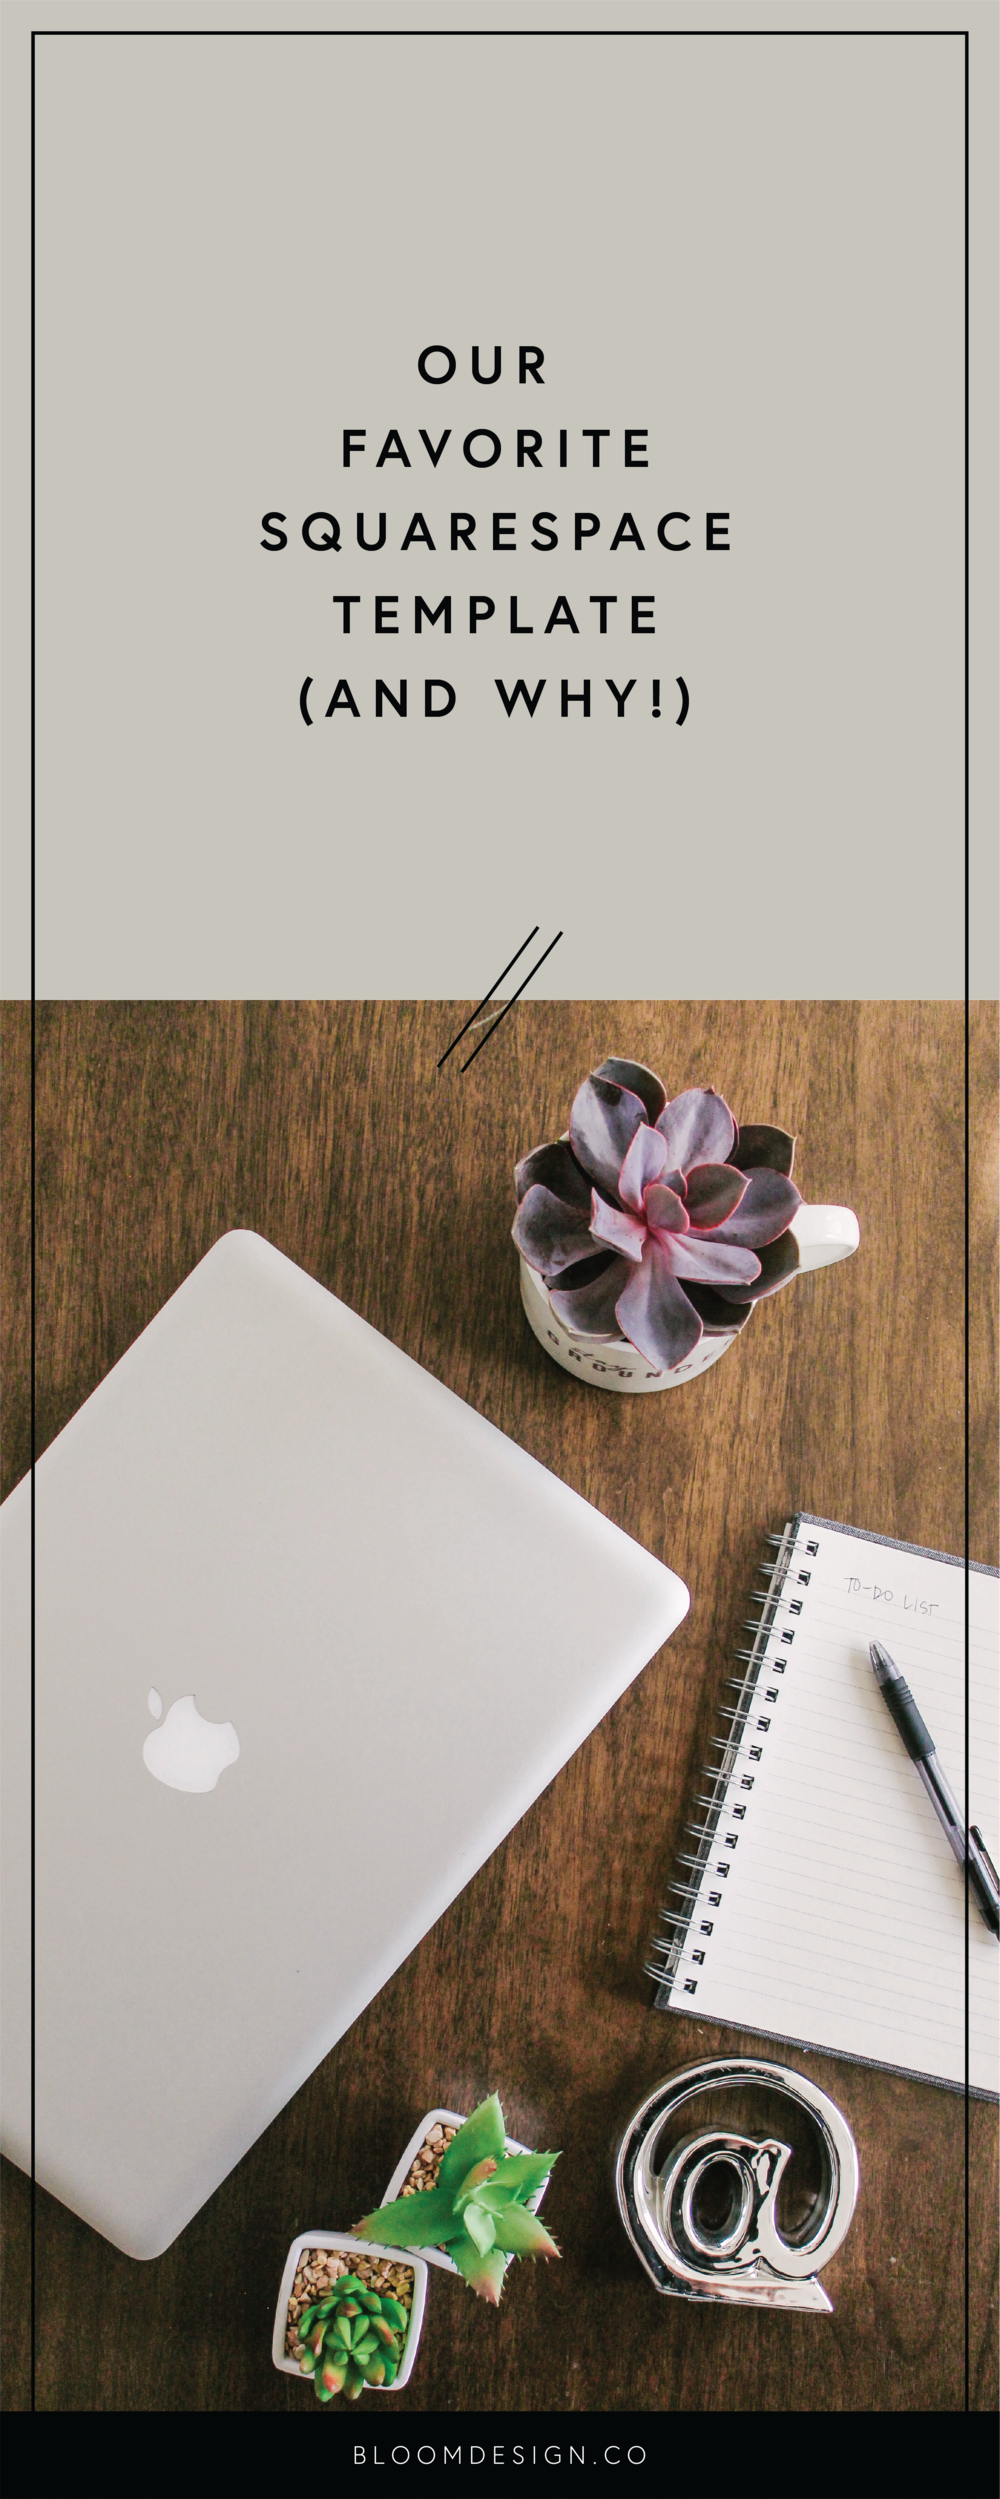 Our Favorite Squarespace Template (And Why!)